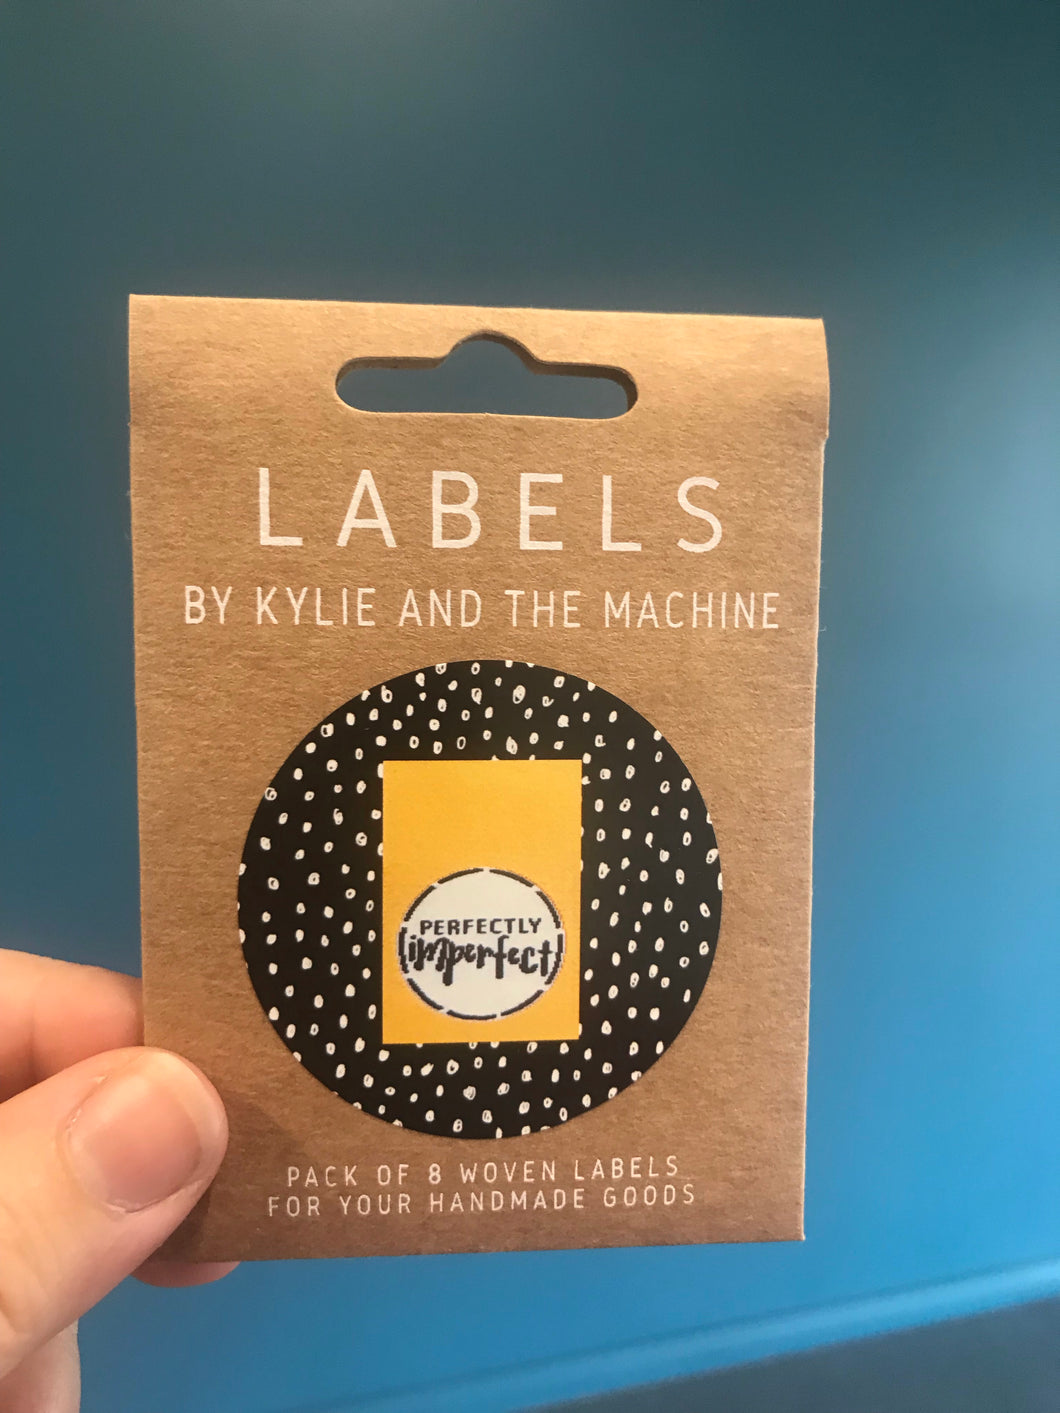 'Perfectly imperfect' woven label